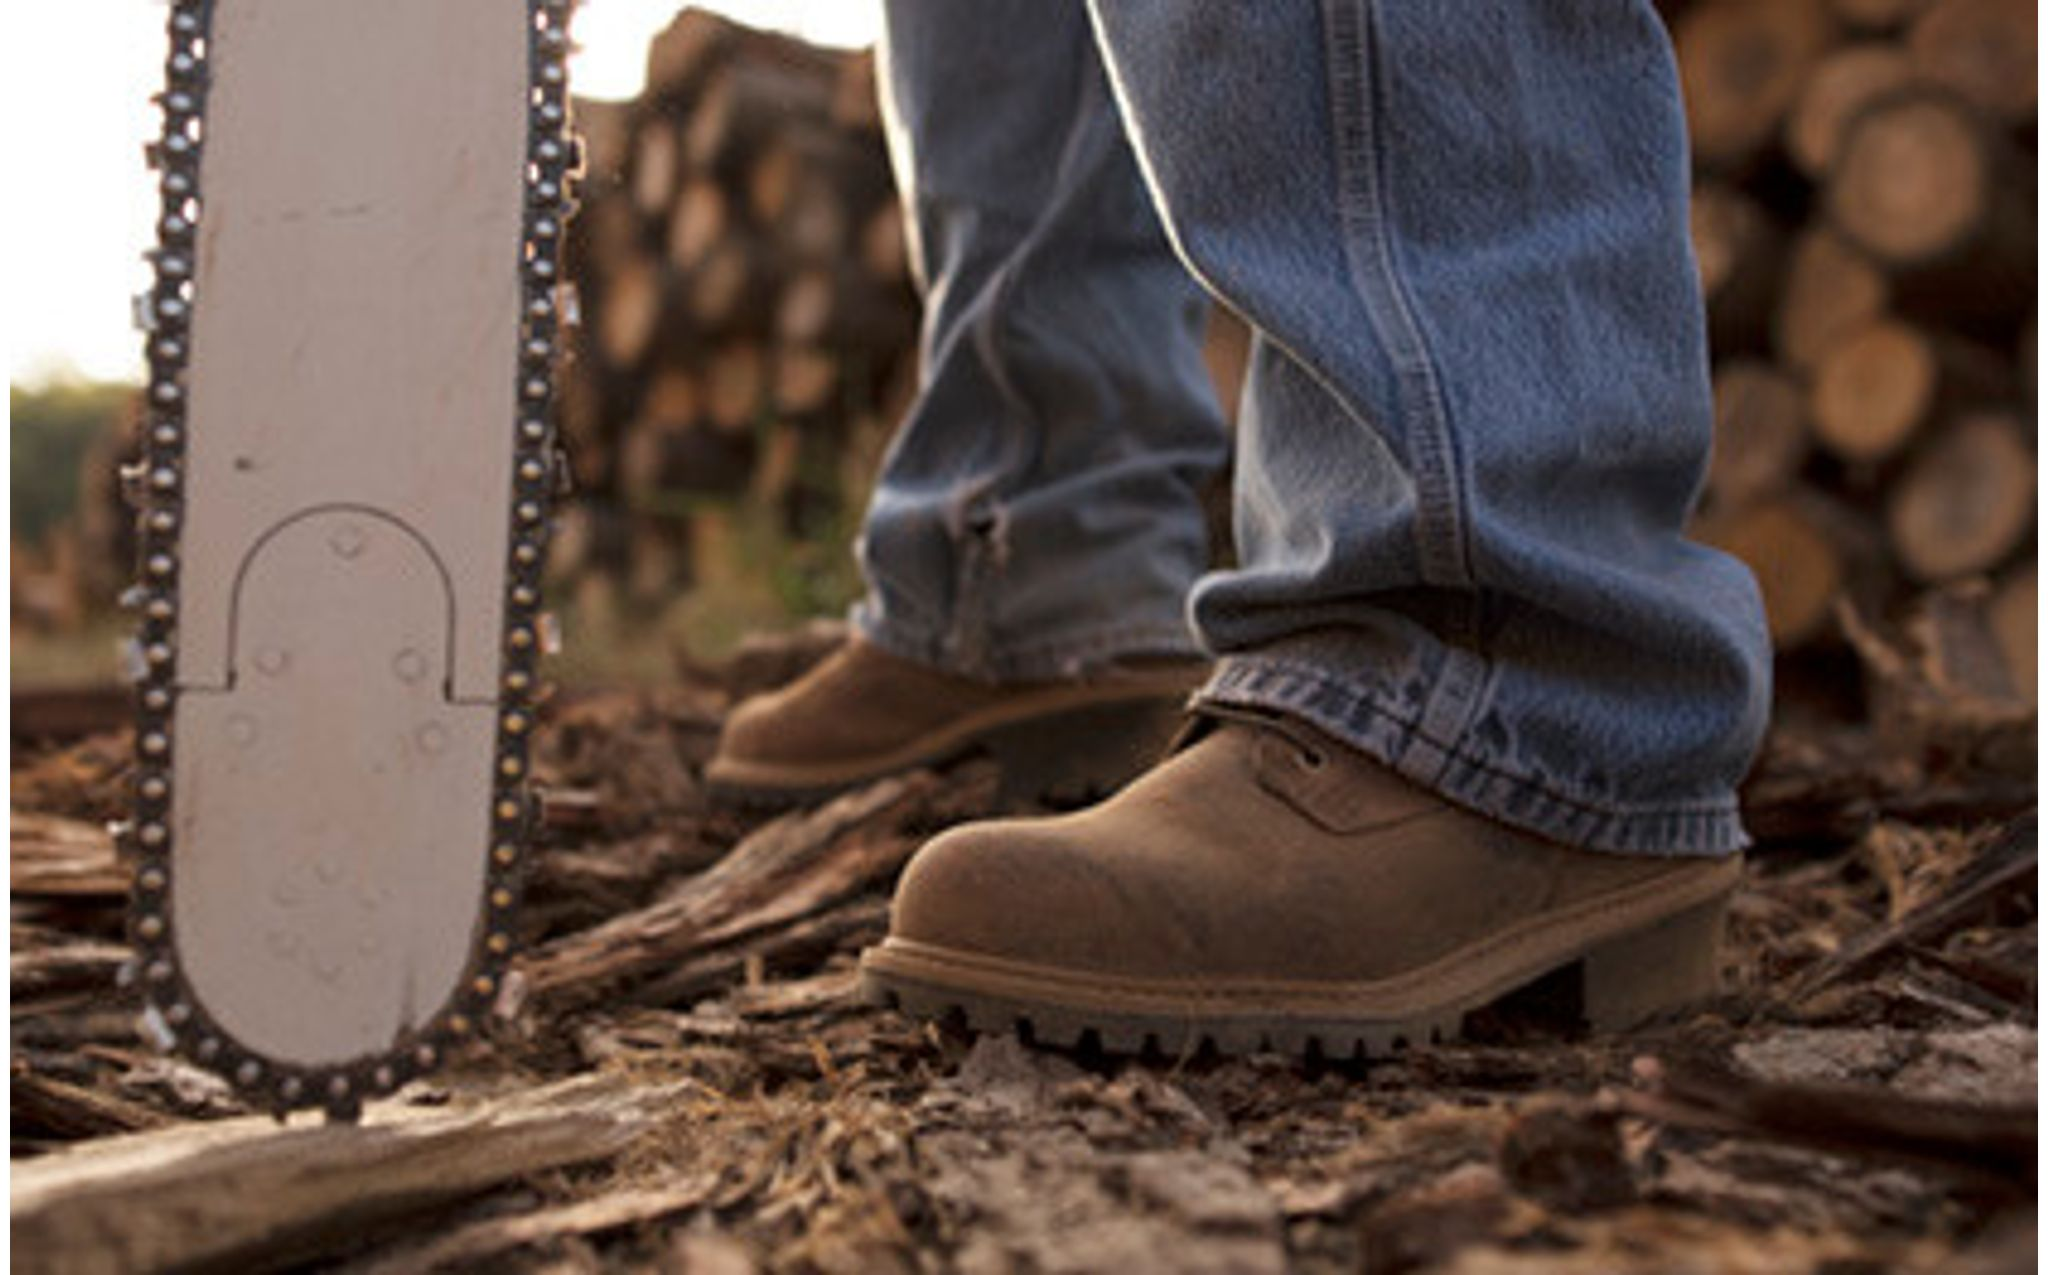 b3252d44867 Work Boots | Durable Boots in Soft and Safety Toe Styles | Irish Setter